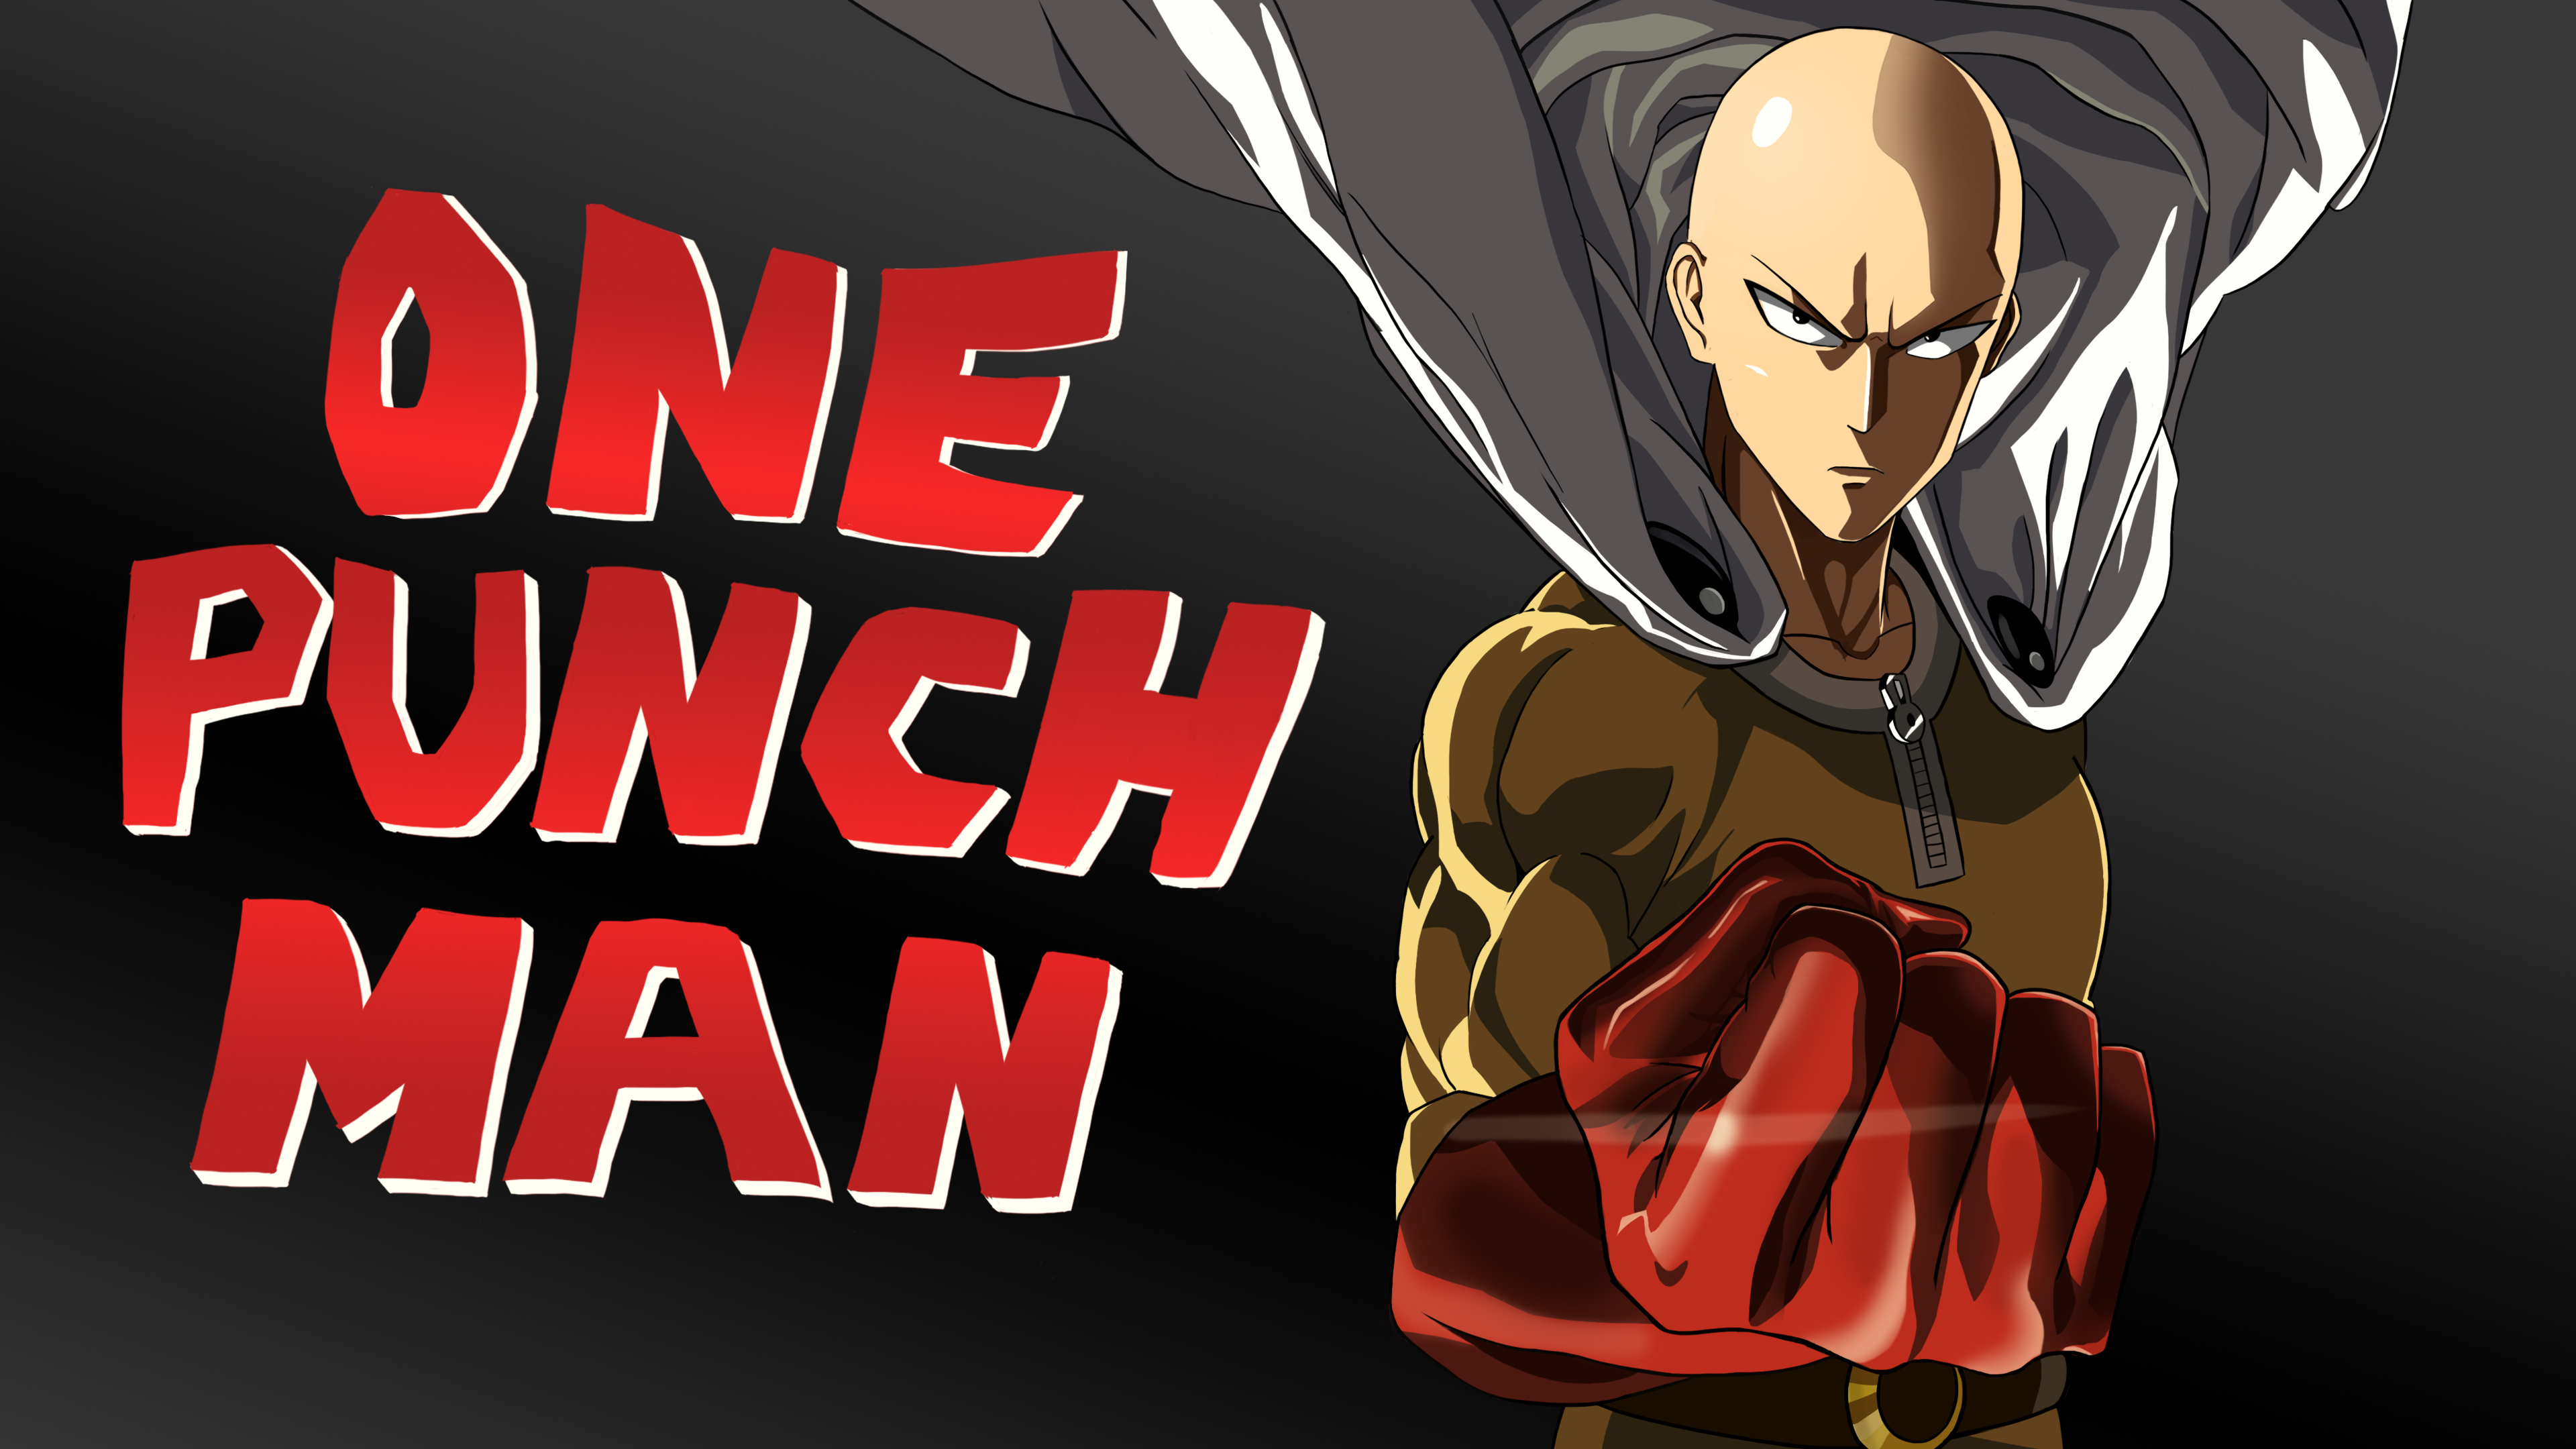 572 E Punch Man HD Wallpapers